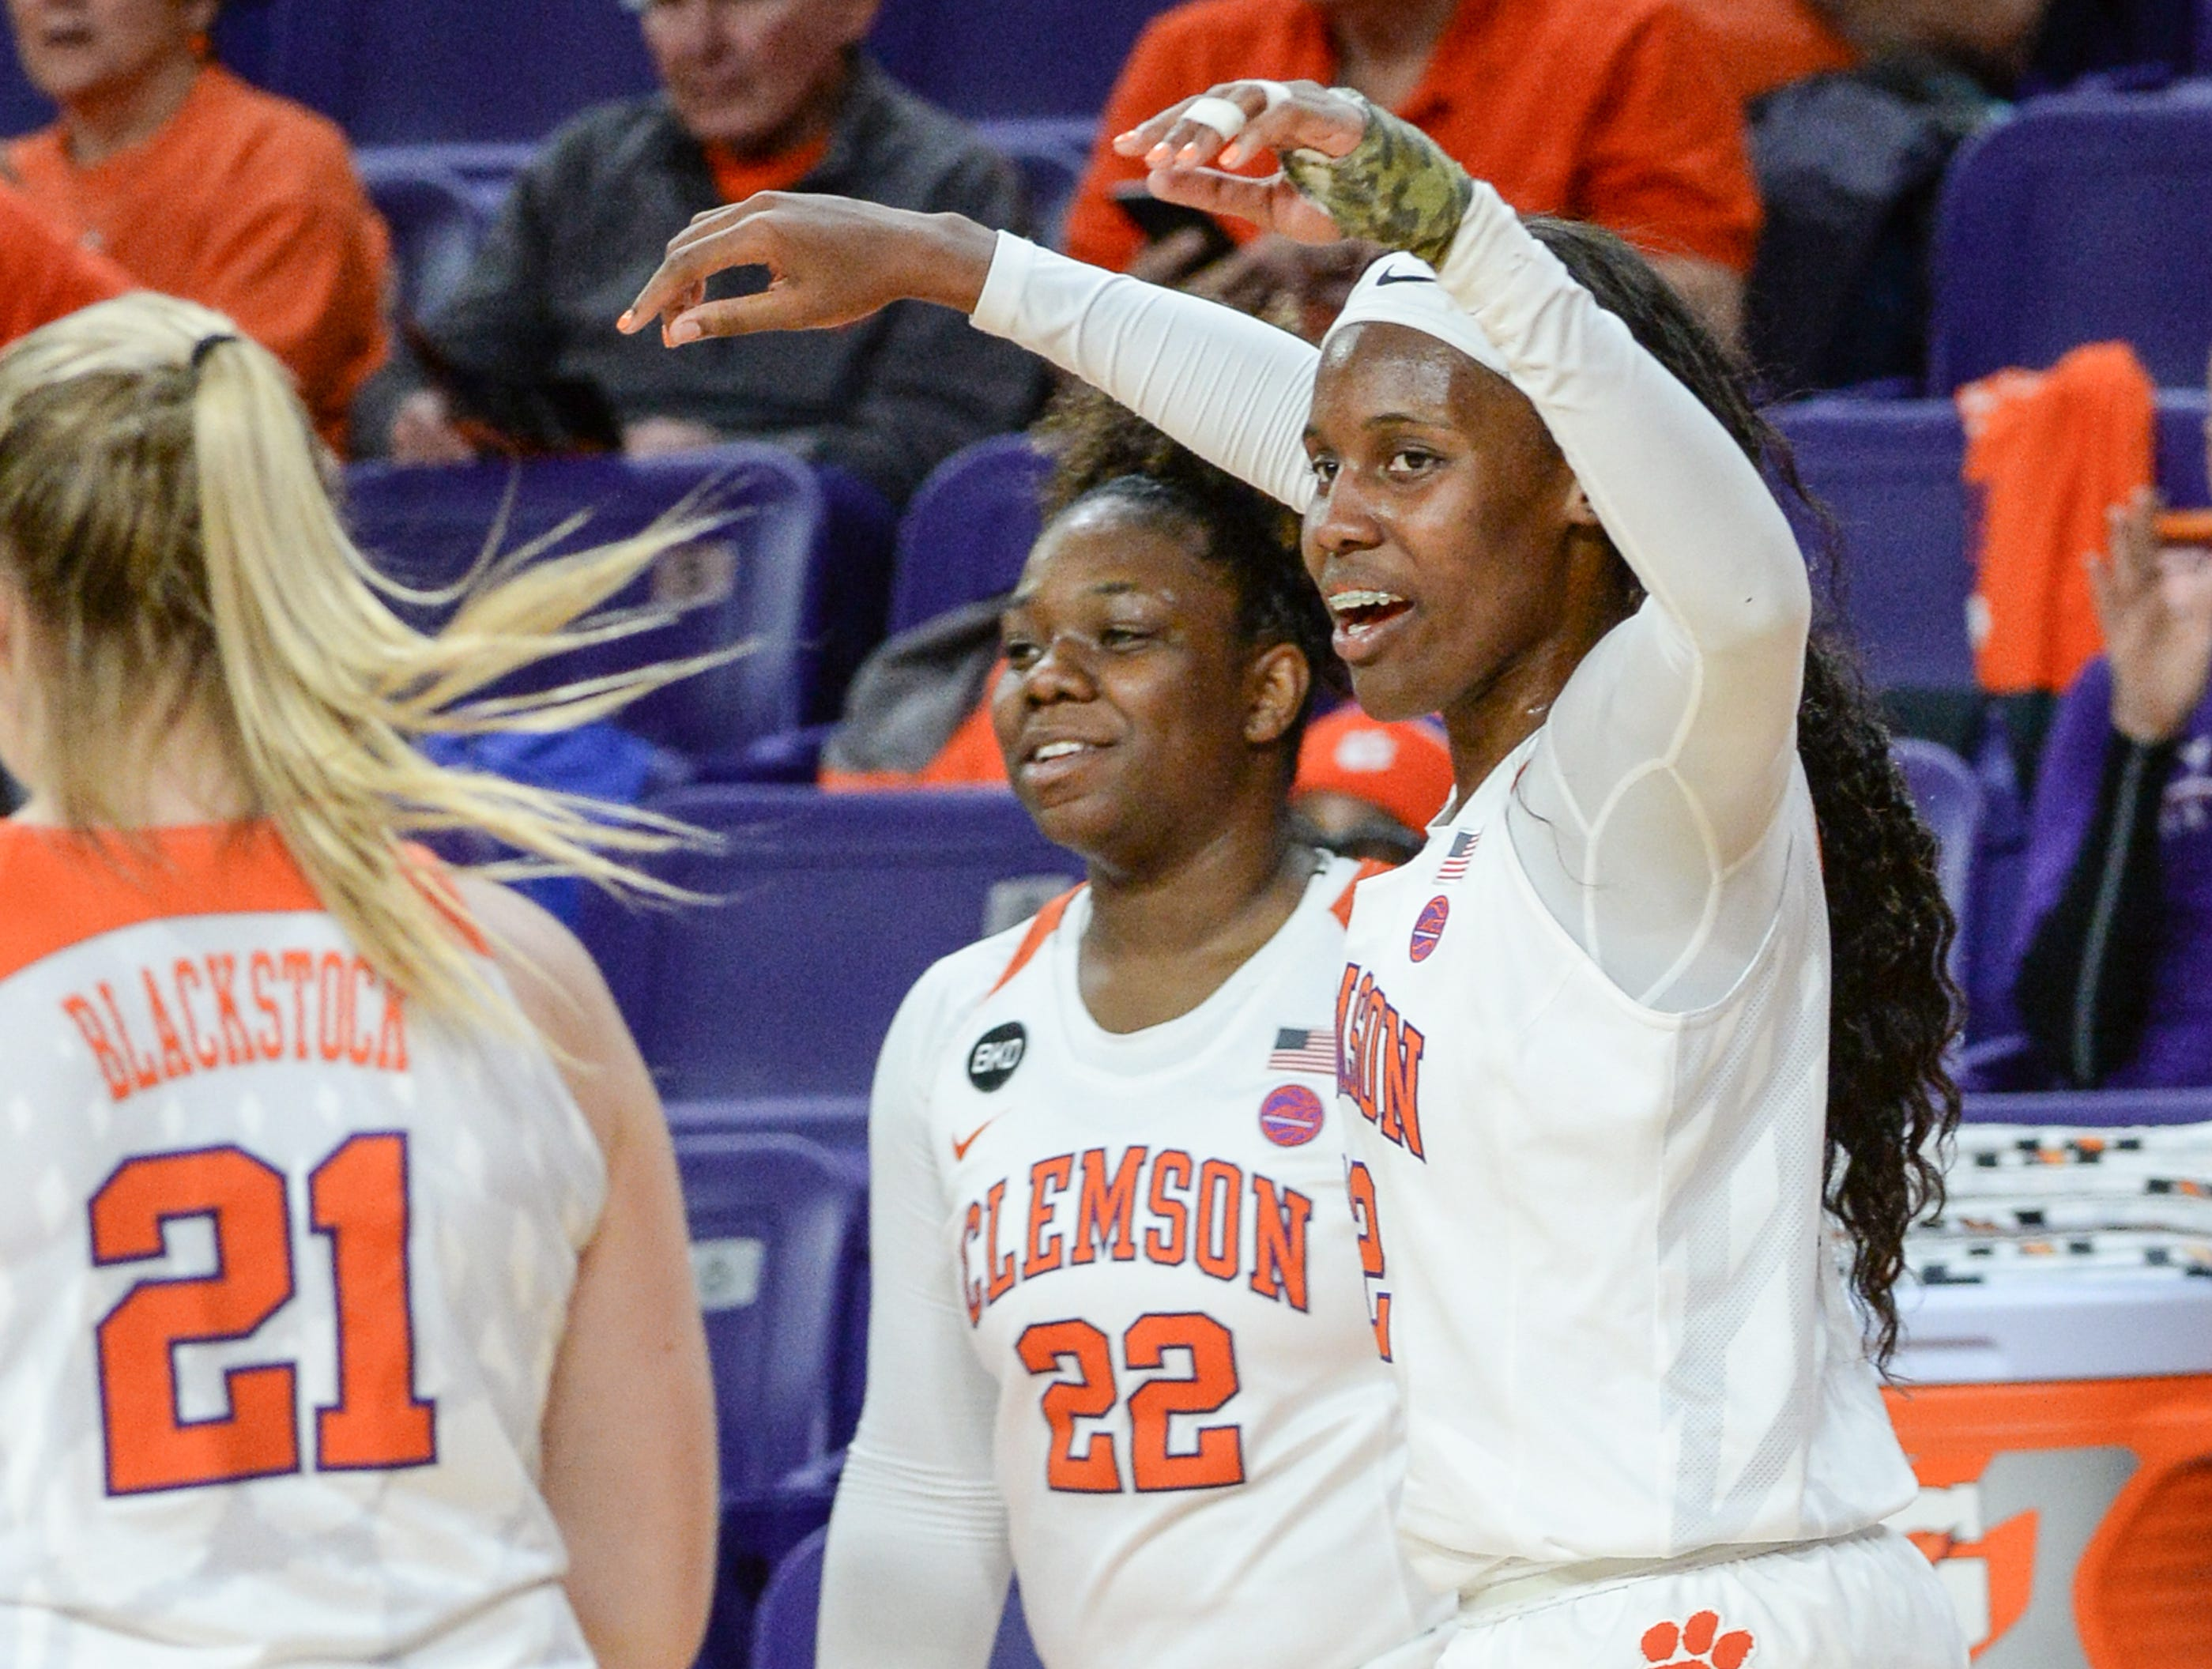 Clemson guard Aliyah Collier(12) celebrates with teammates a 71-61 win over Georgia Tech after the gameat Littlejohn Coliseum in Clemson on Thursday, January 17, 2019.